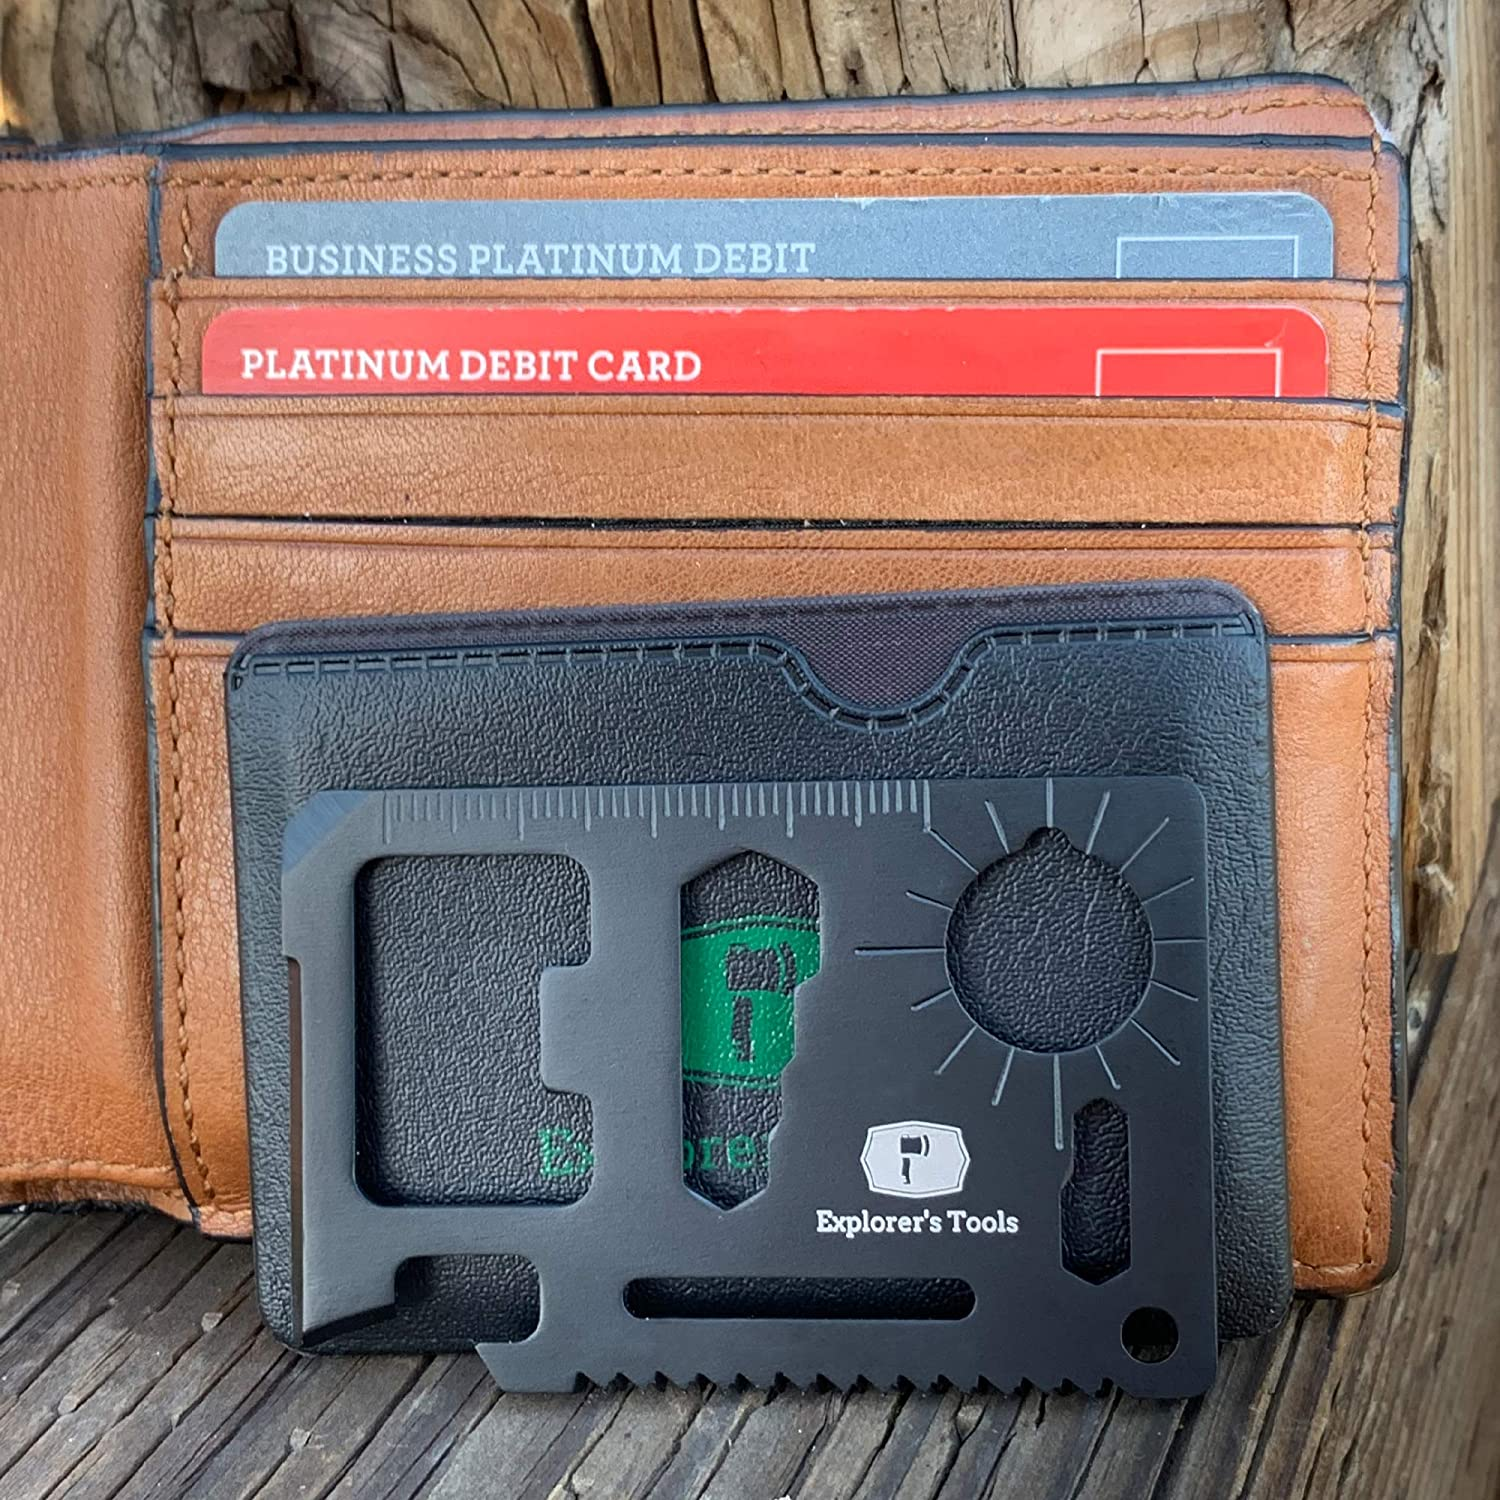 Boyfriend//Pocket Wallet Multitool in Steel Dad 11 in 1 Credit Card Survival Tool /& Beer Bottle Opener by Explorer/'s Tools with Protective Sleeve  Perfect Gift for Men Husband Father DIY Handyman